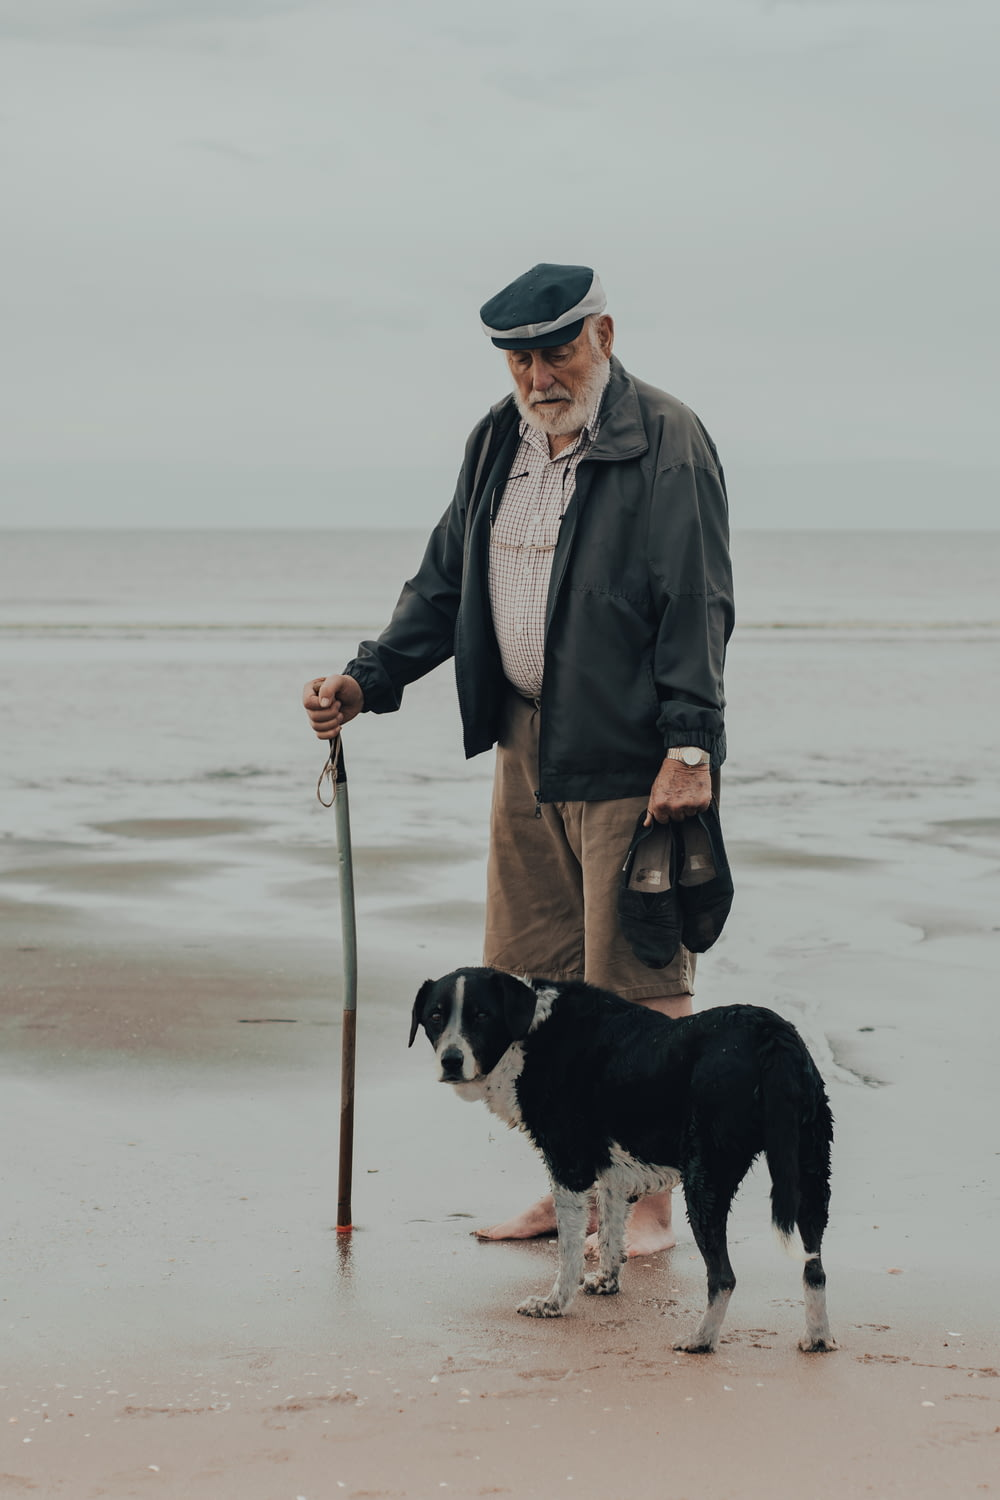 man in gray coat holding black and white short coat dog on beach during daytime